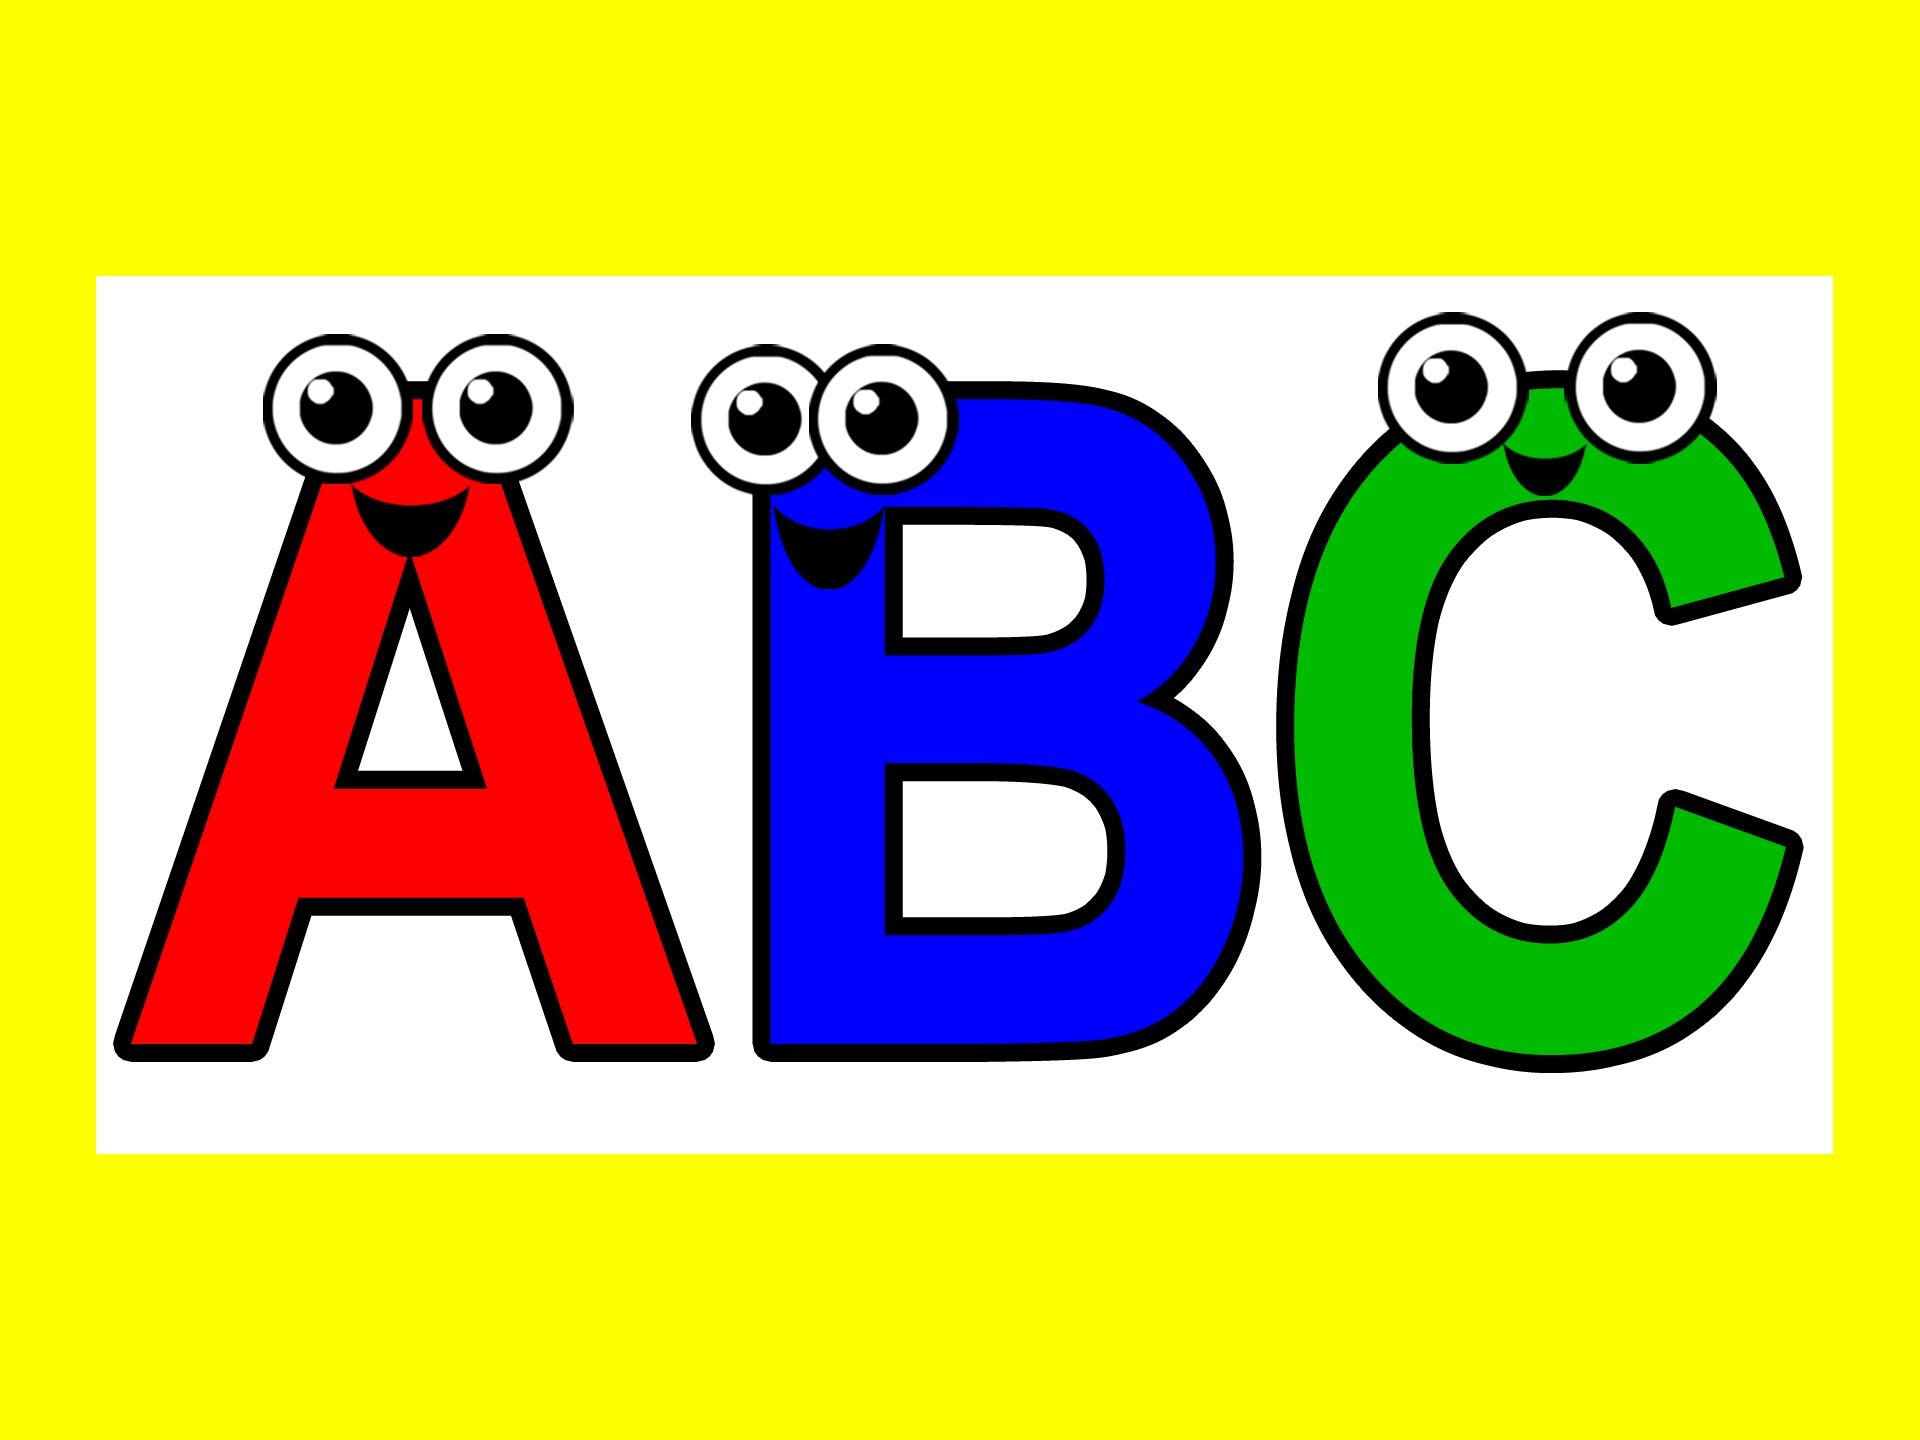 Abcd Words Wallpaper